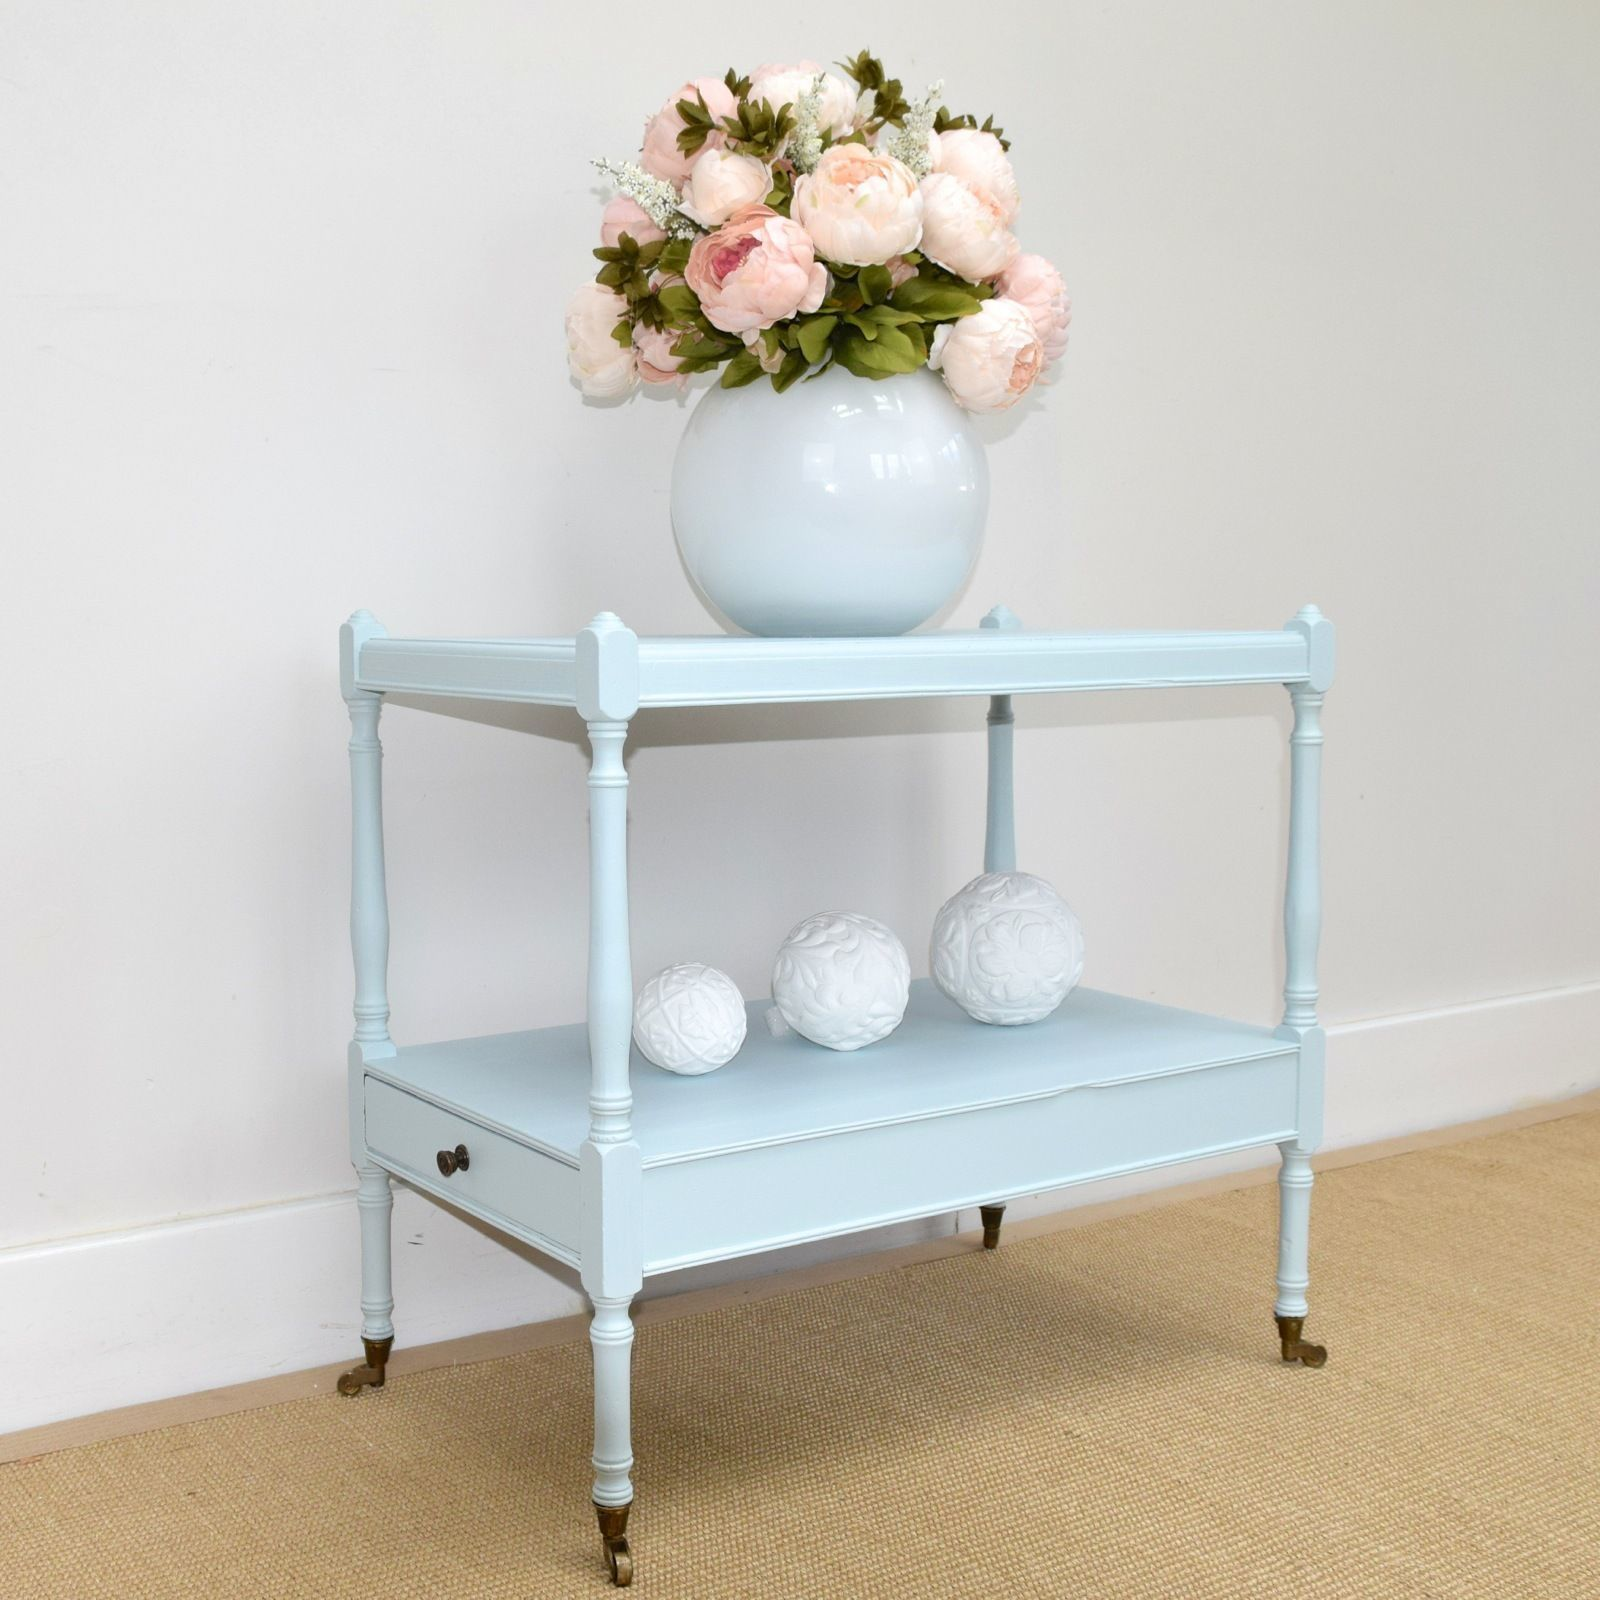 Vintage Tea Trolley, Bedside Table, Stand, Painted In